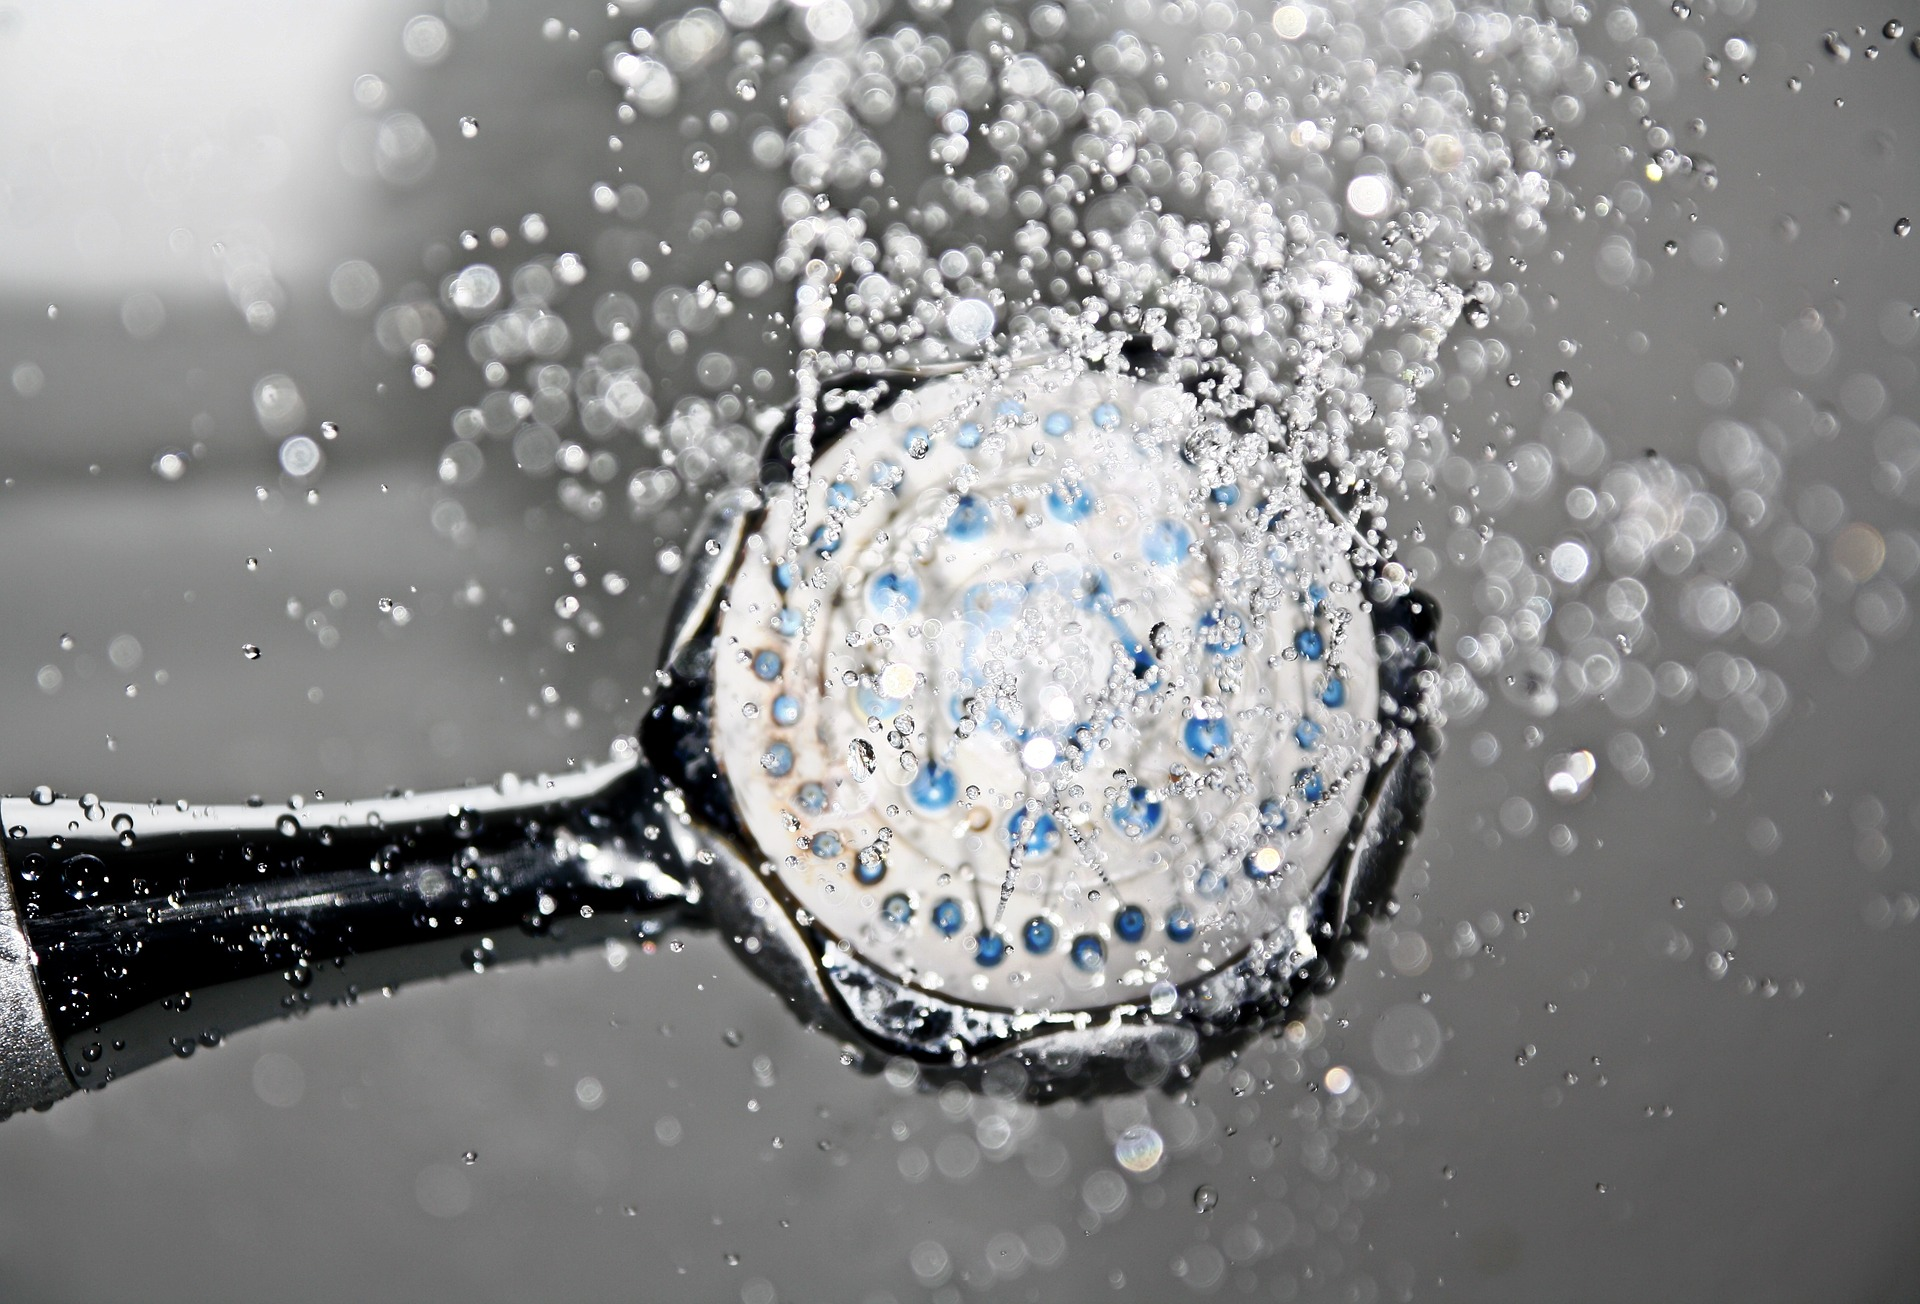 What to Look For When Buying a Shower Head